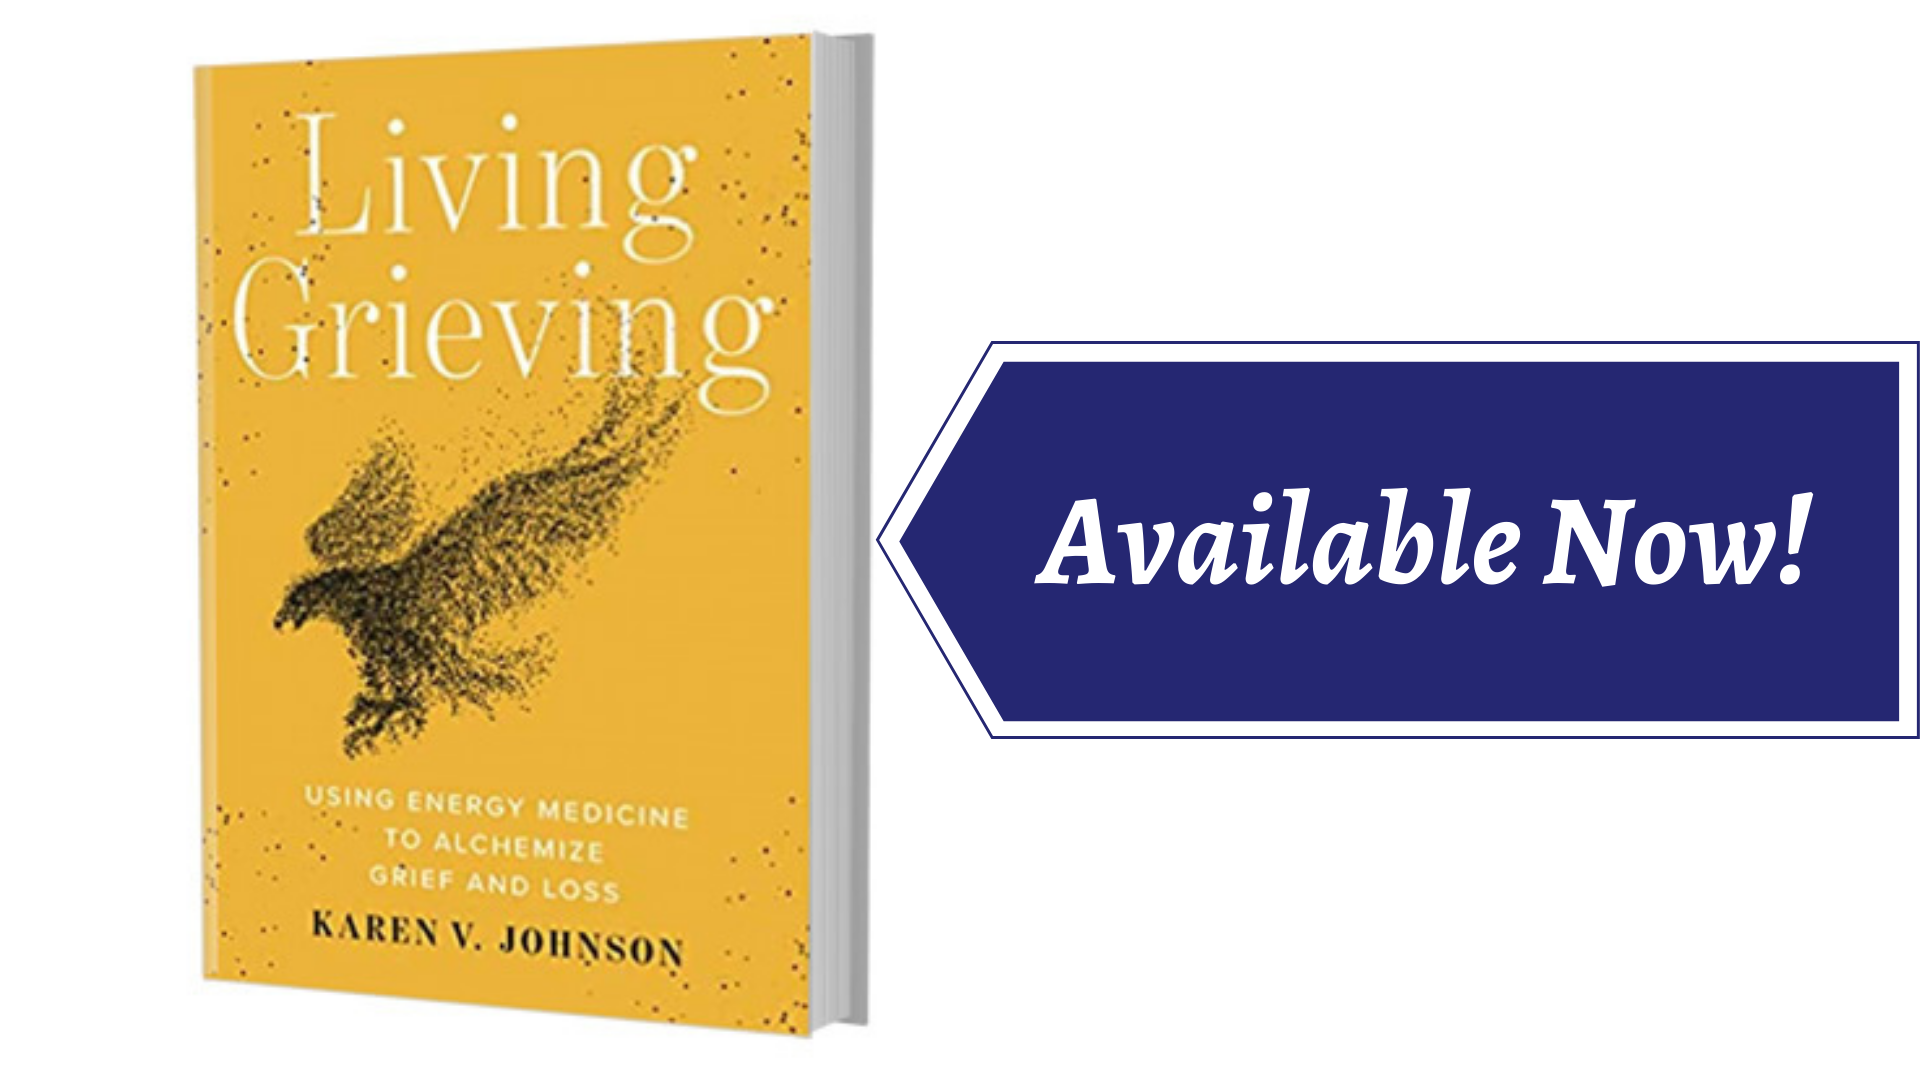 Image of Living Grieving's book cover, with a link to the store page to purchase the book.